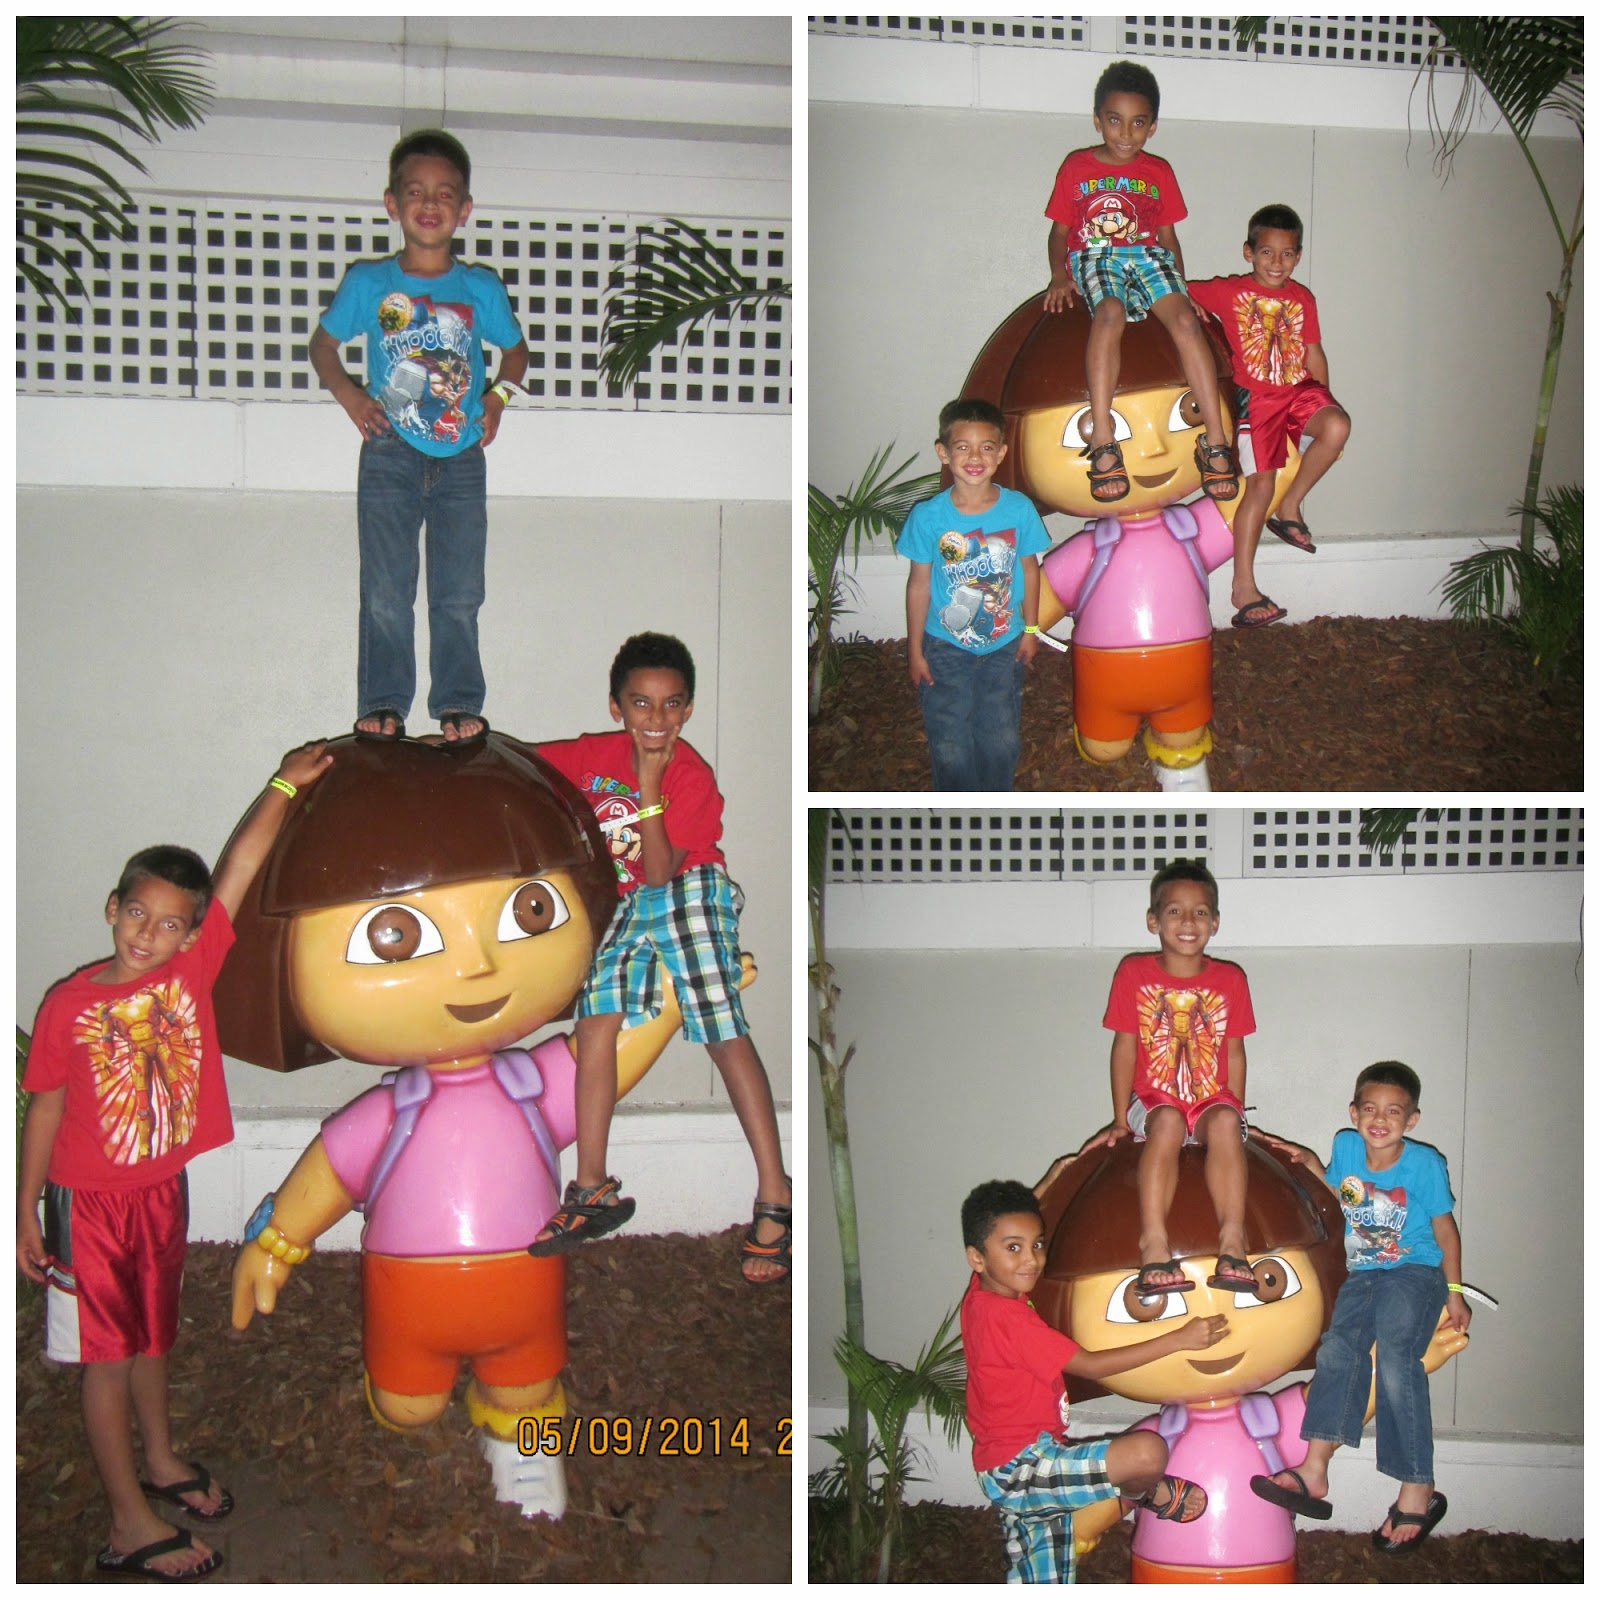 NICKHOTEL_DORA_GRANDCHILDREN_ORLANDO